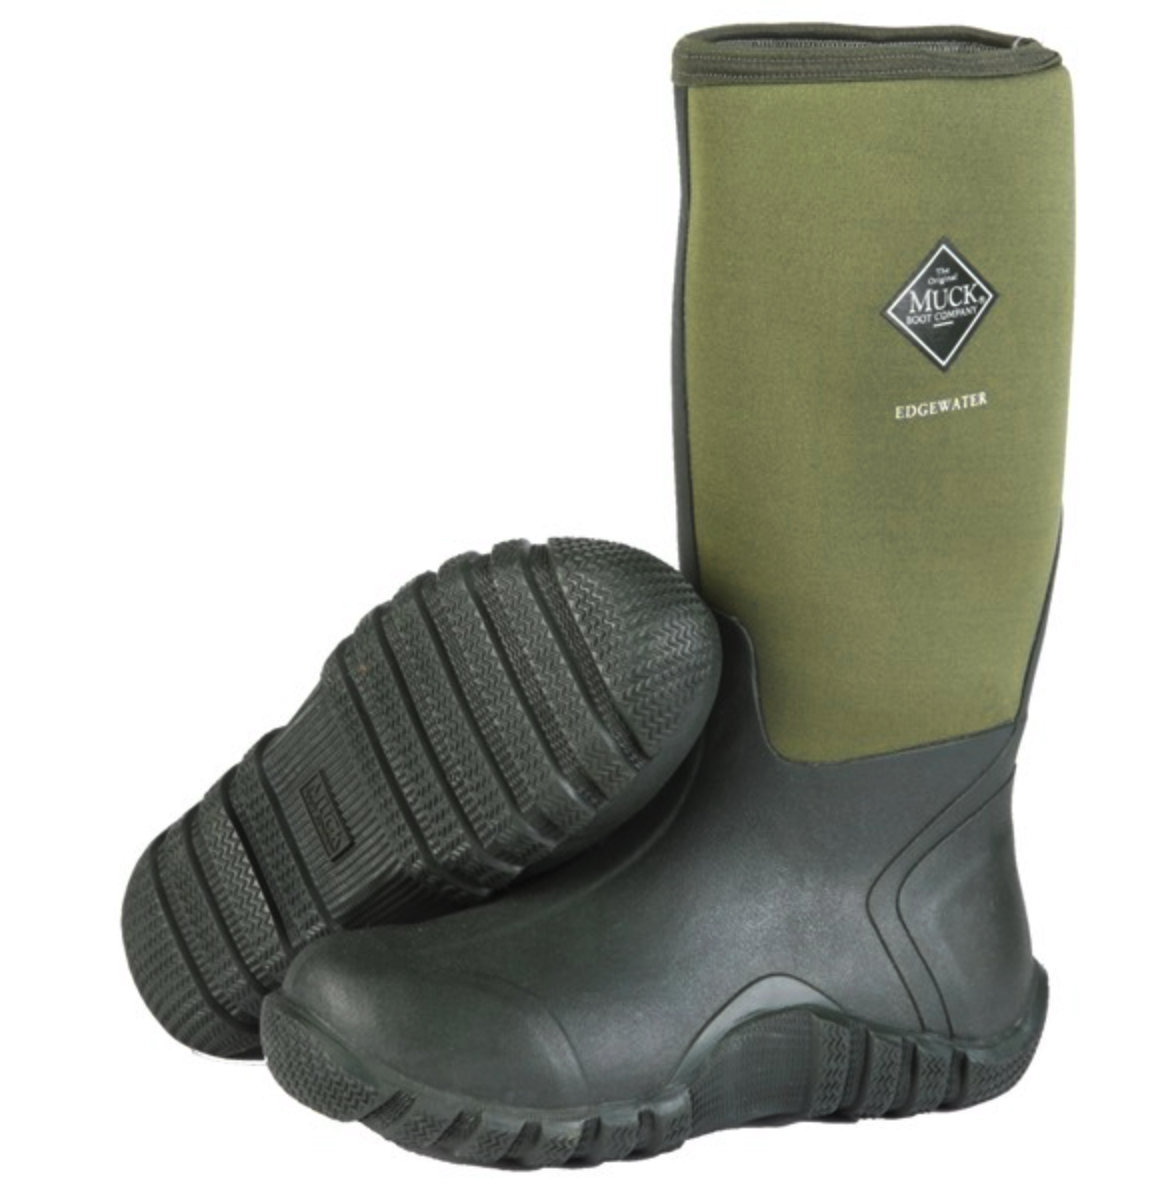 Muck Boot - Edgewater - Moss - £64.99 | Garden4Less UK Shop